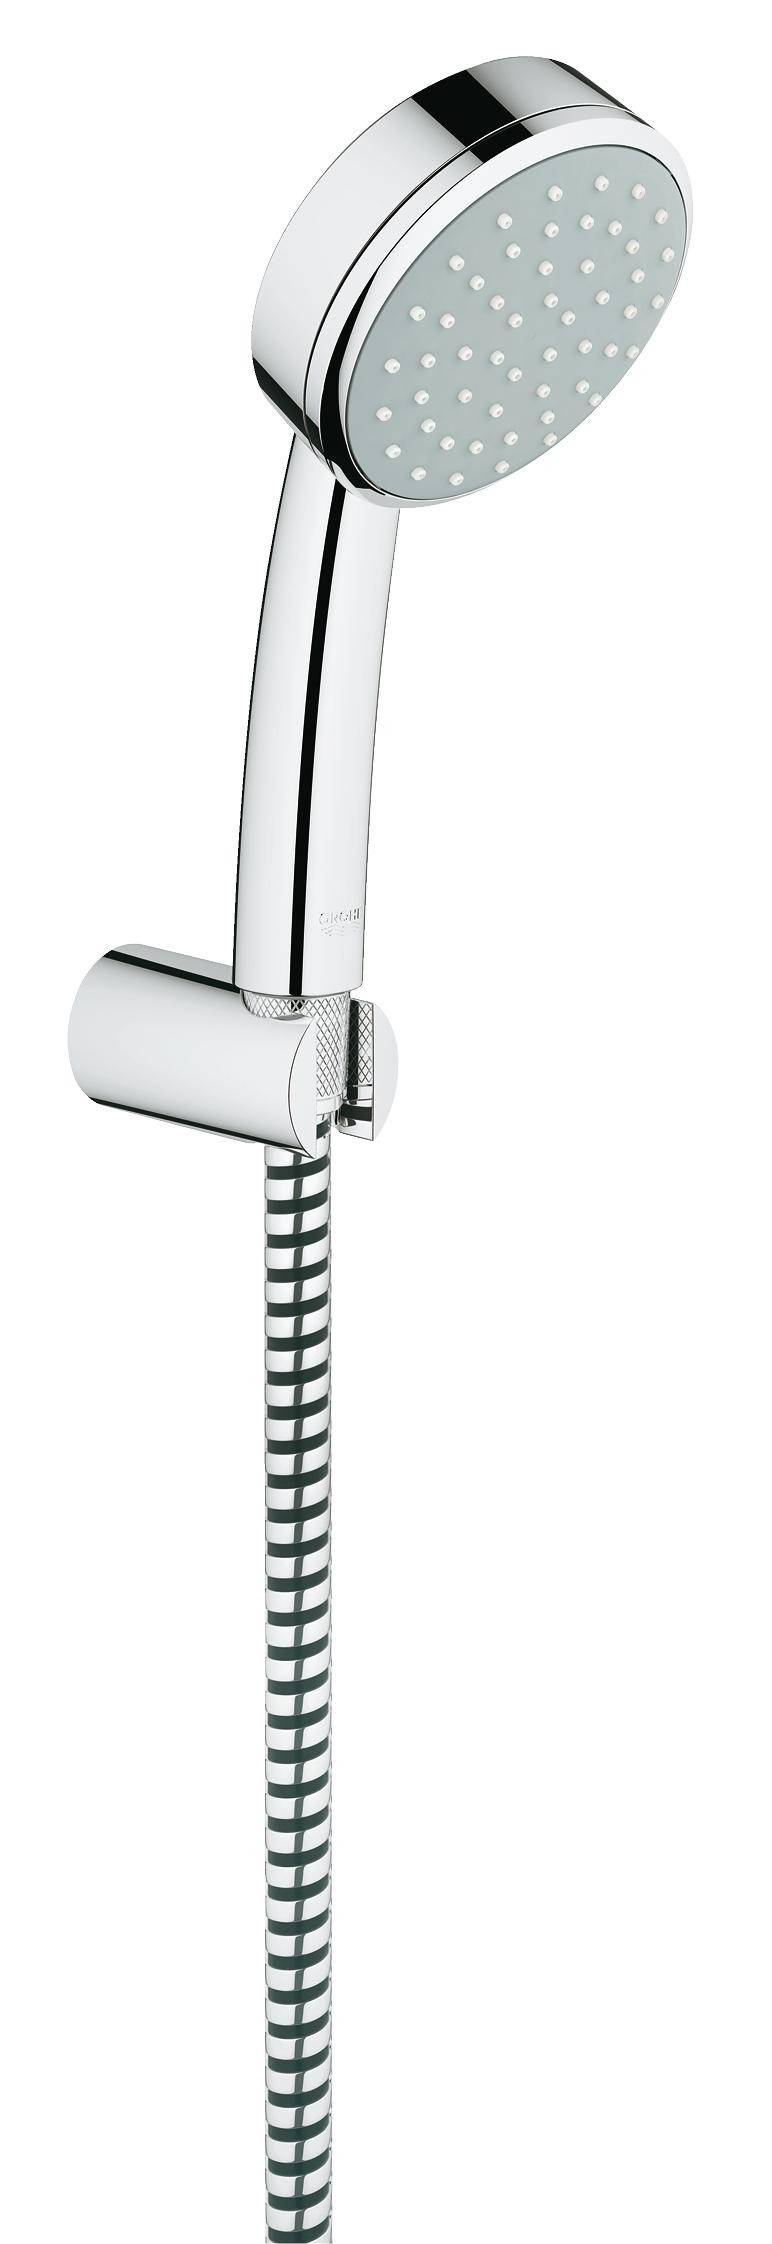 Набор Grohe New tempesta cosmopolitan 100 26084001 grohe душевая лейка grohe tempesta new 100 27597000